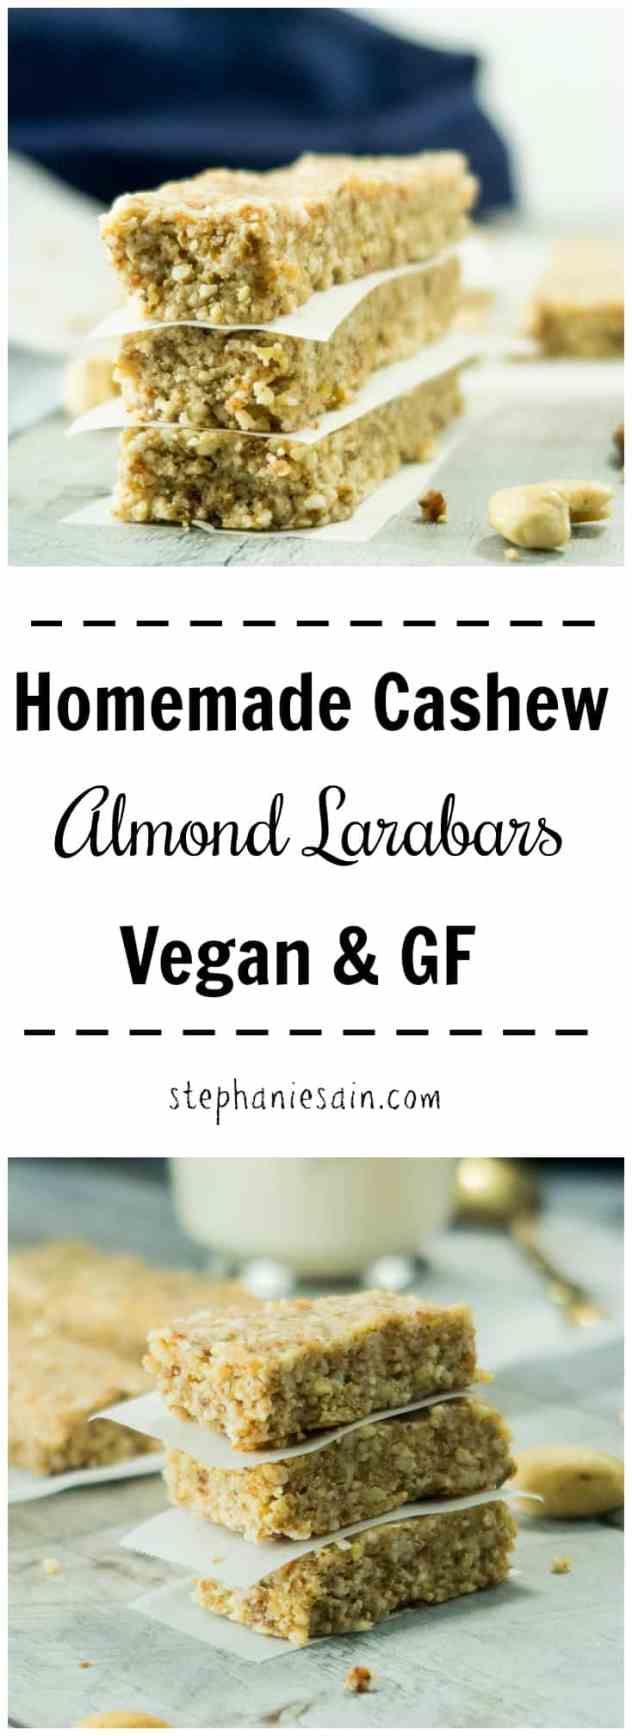 These Homemade Cashew Almond Larabars require Only six ingredients and 5 minutes prep. Great for breakfast or a grab and go snack. Made with real food ingredients and no added refined sugars. Vegan & Gluten Free.